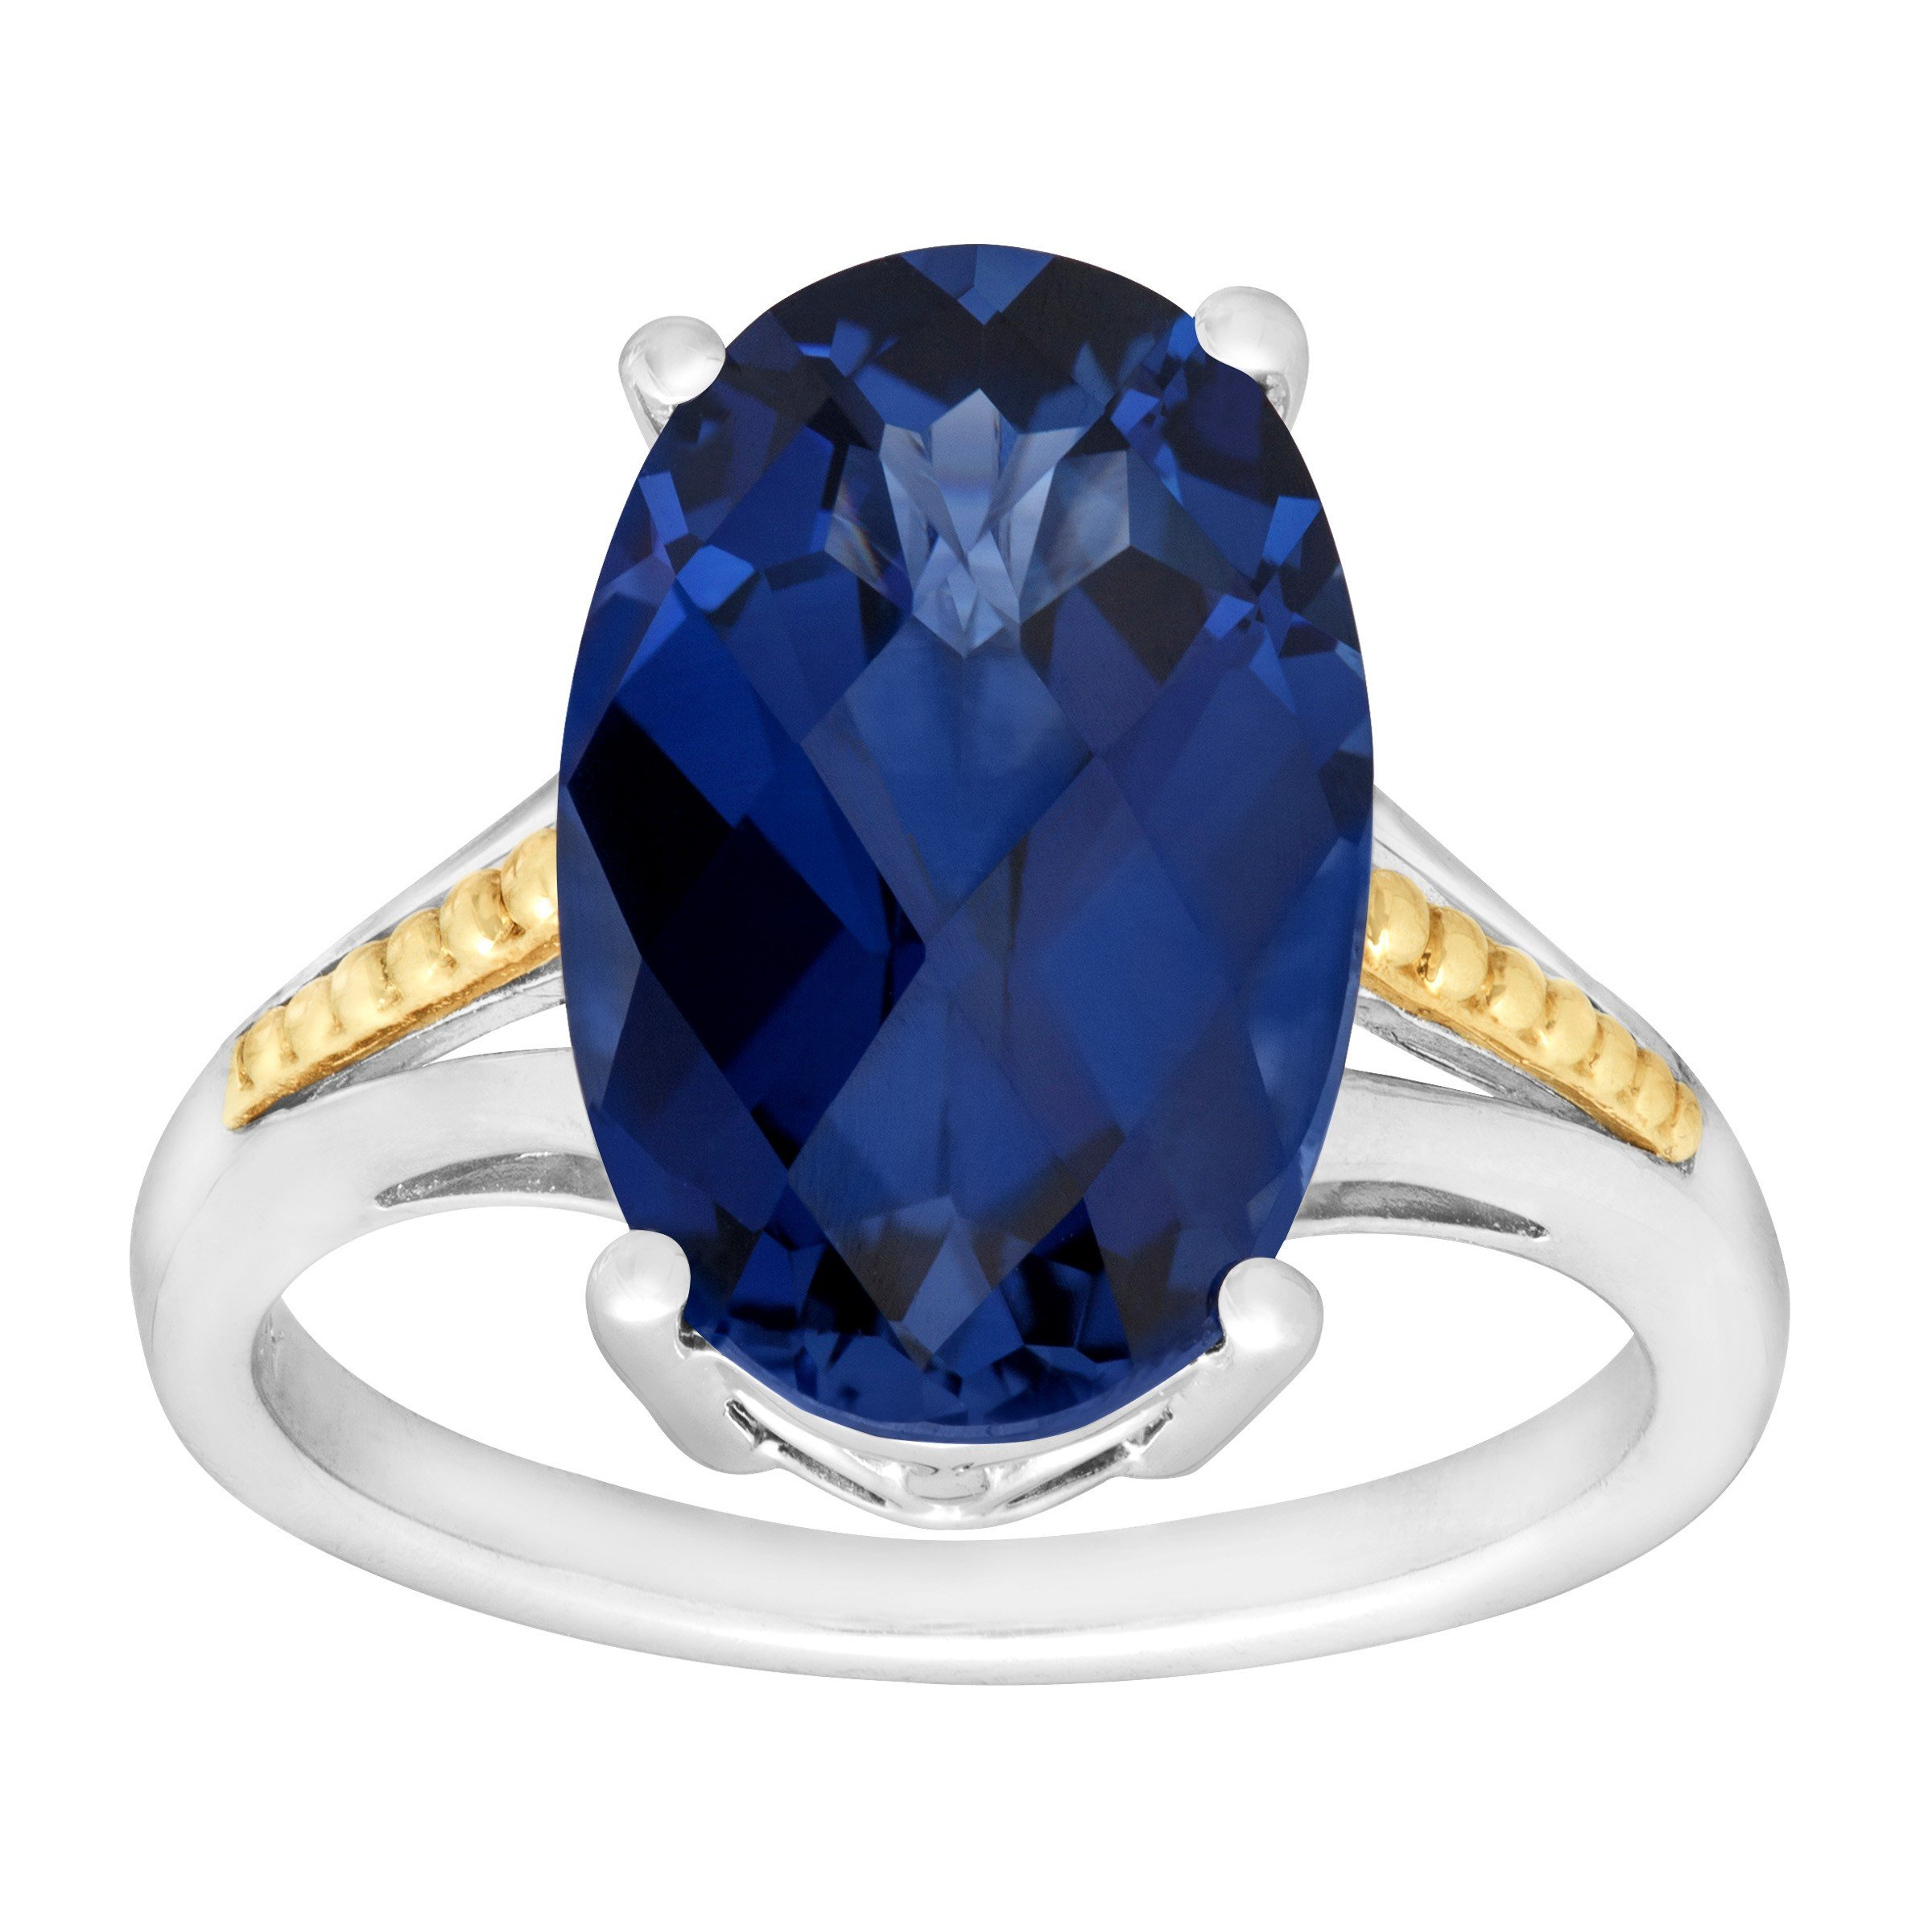 9 1/2 ct Created Ceylon Sapphire Cocktail Ring in Sterling Silver & 14K Gold